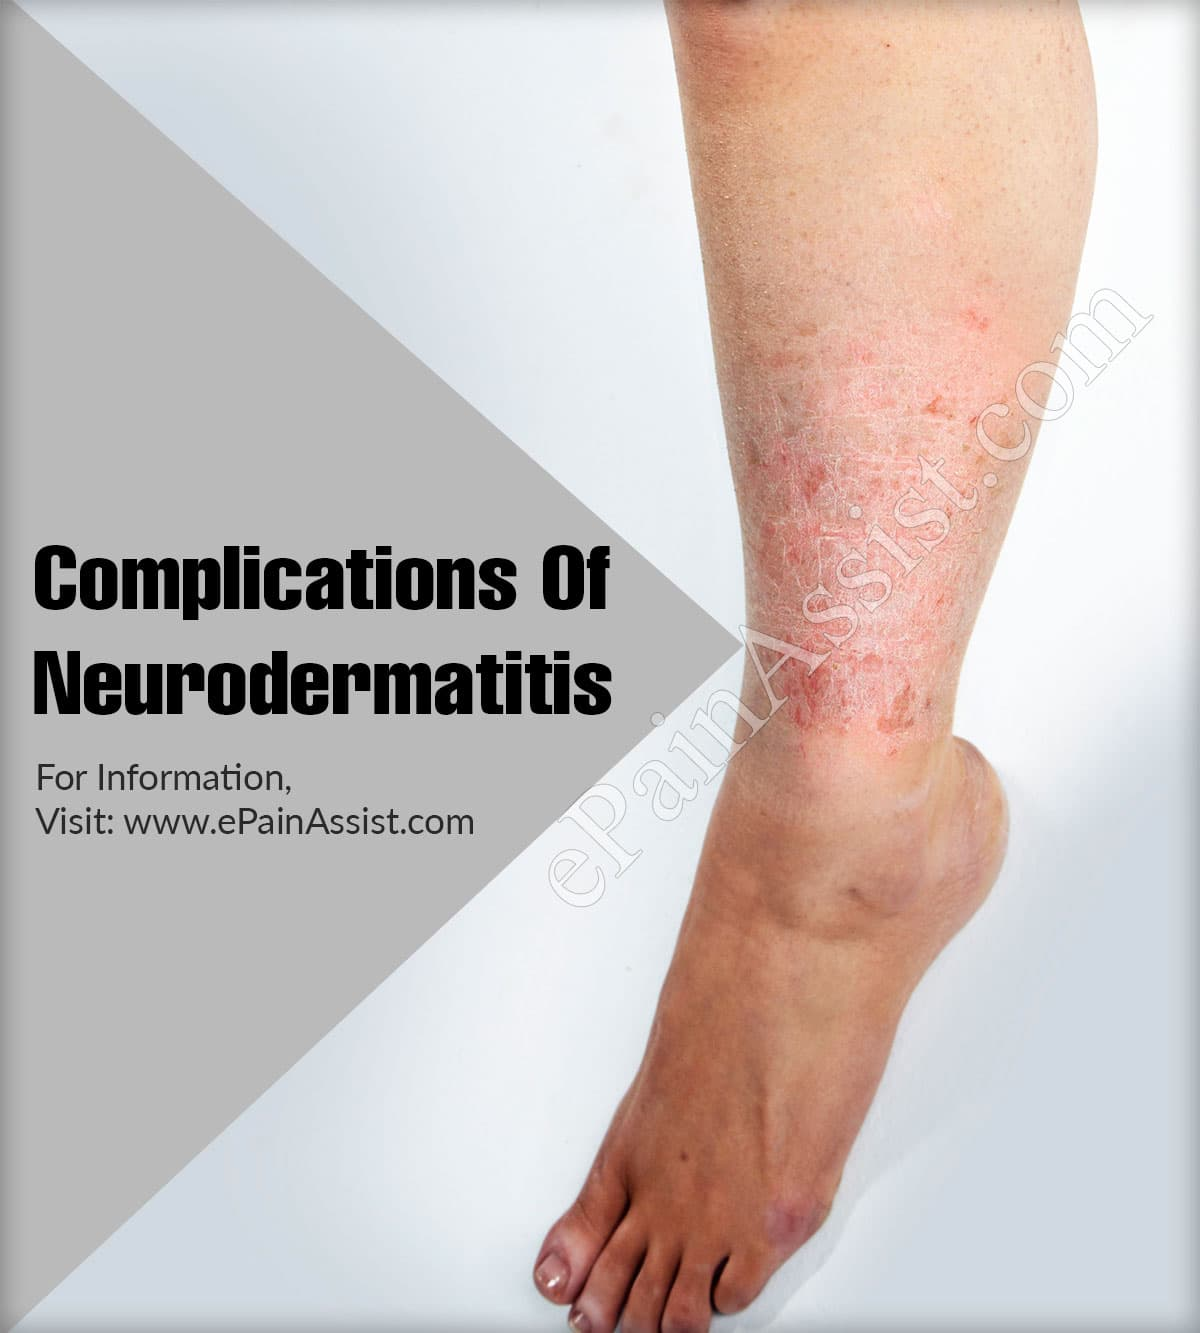 Complications Of Neurodermatitis